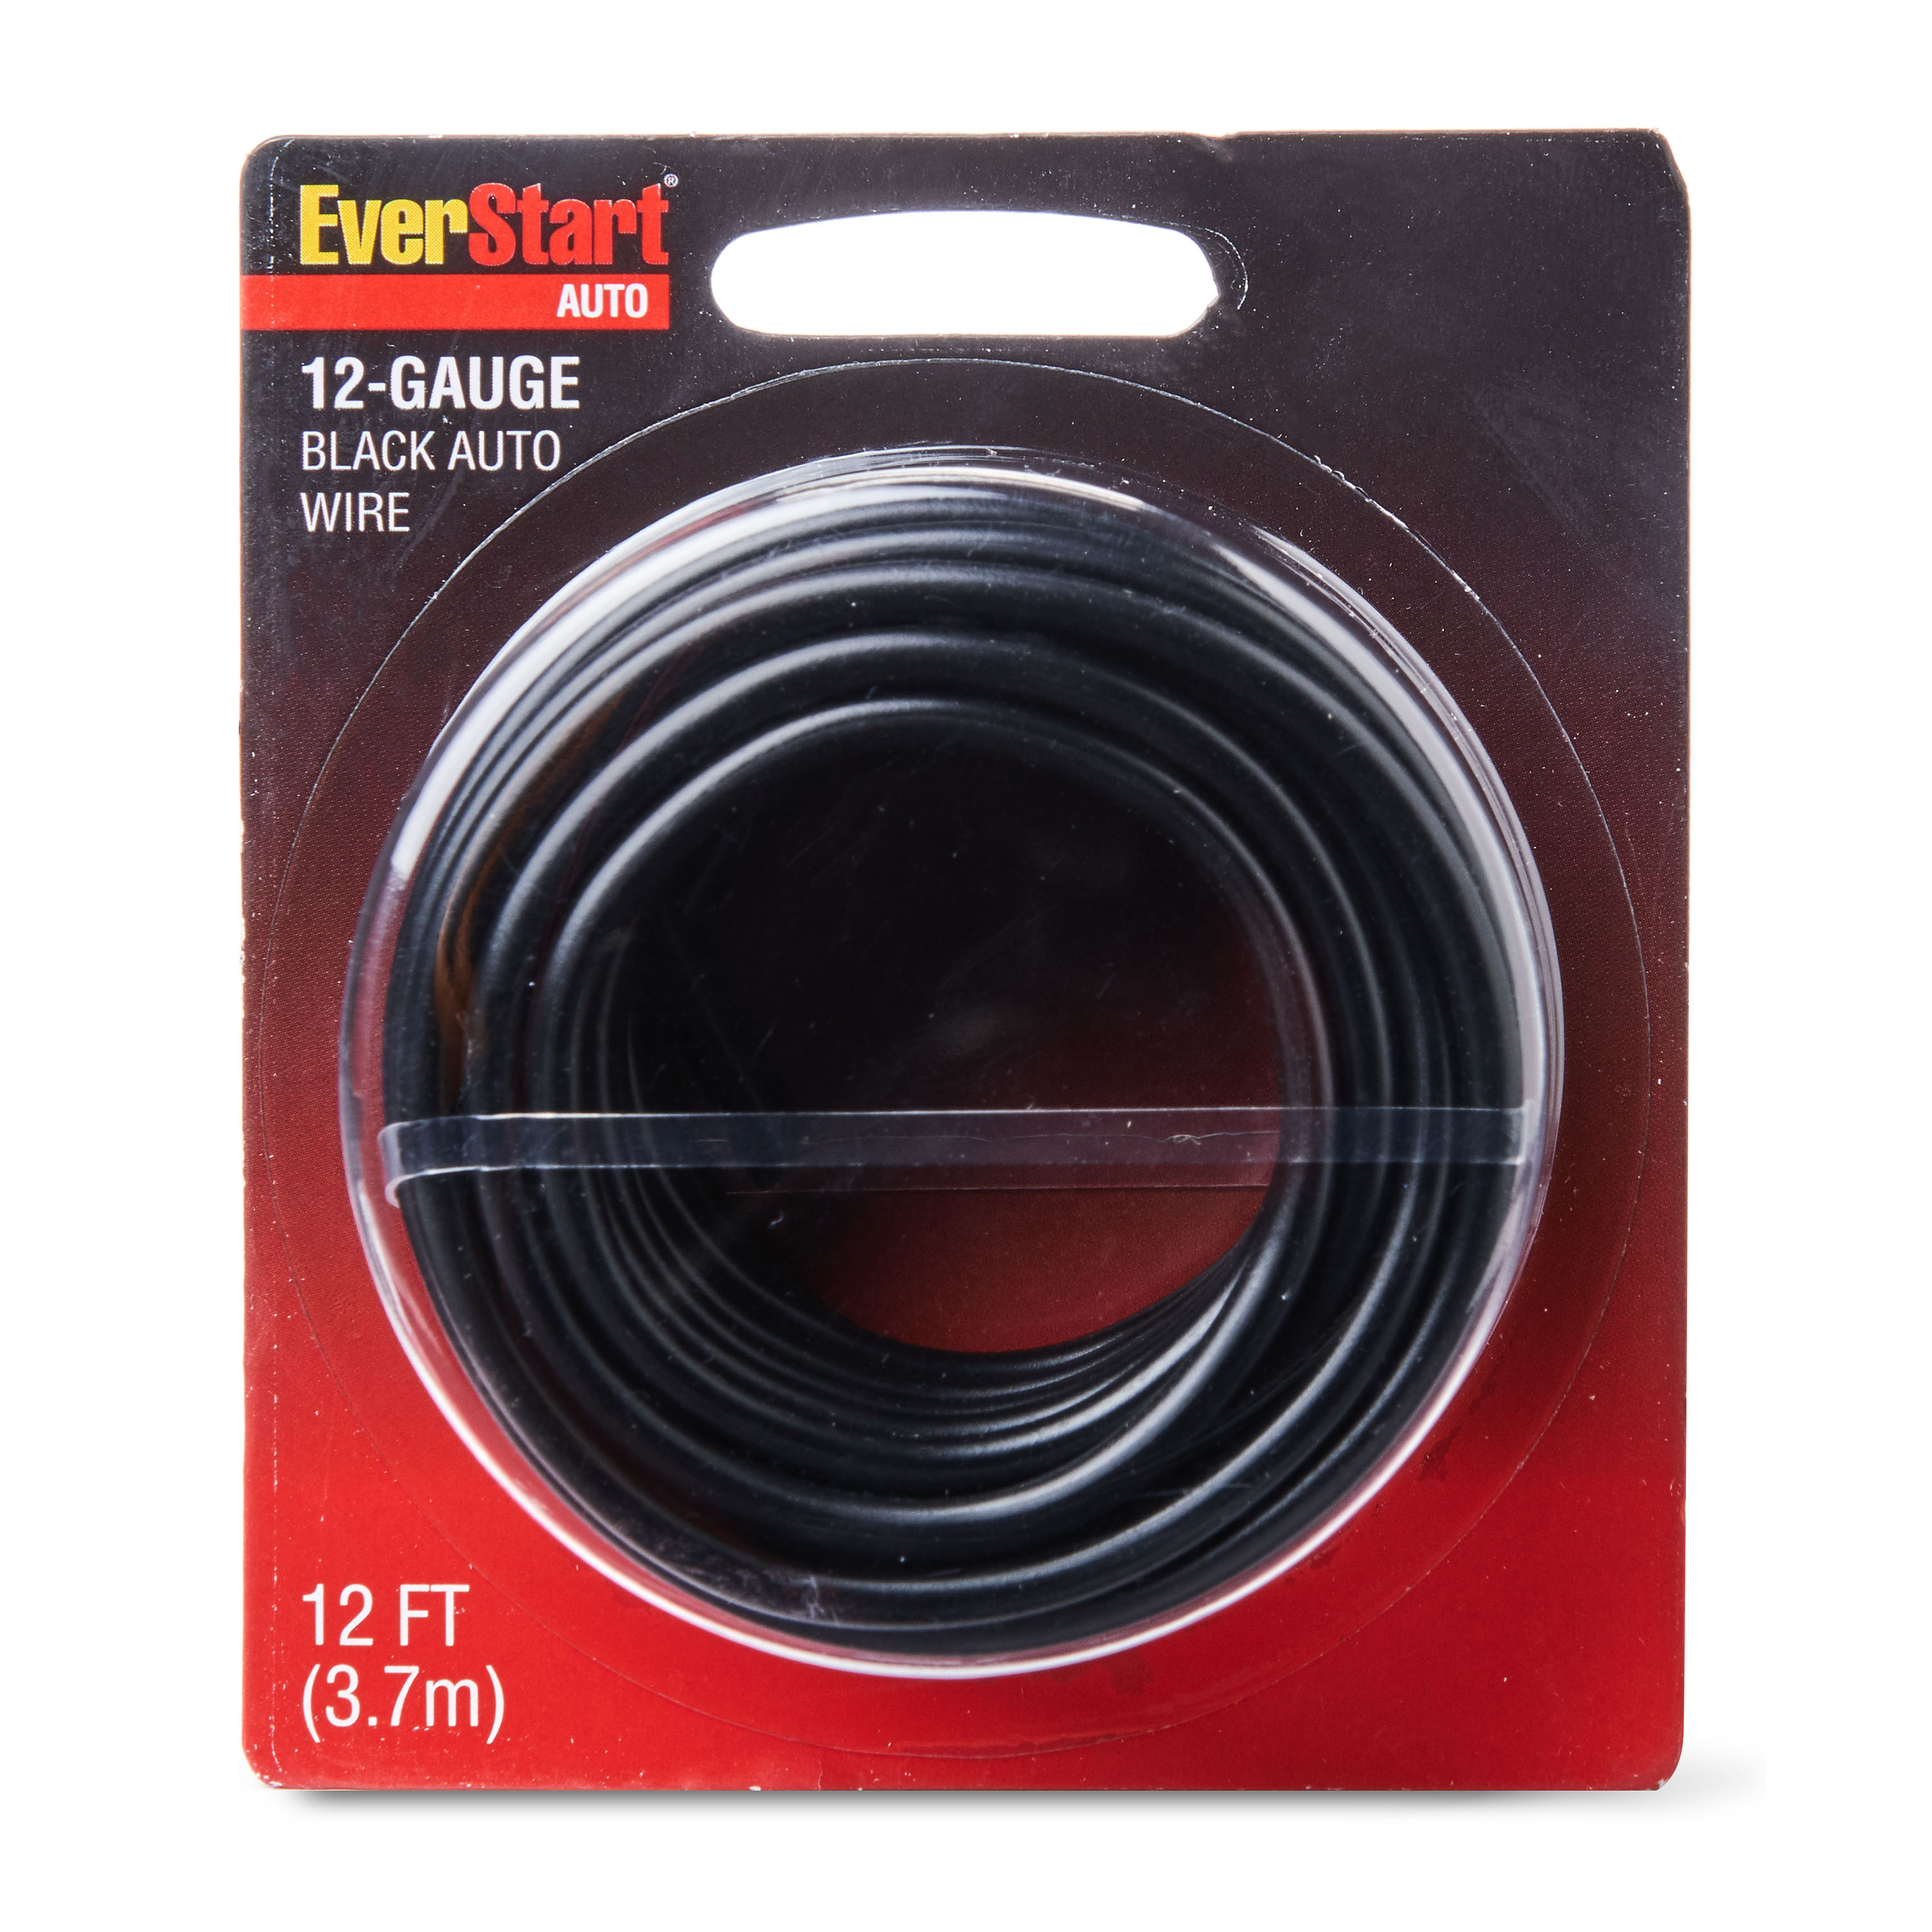 EverStart 12-Gauge Auto Wire, Black, 12ft,Can Light Swith to Fuse Block or Relay